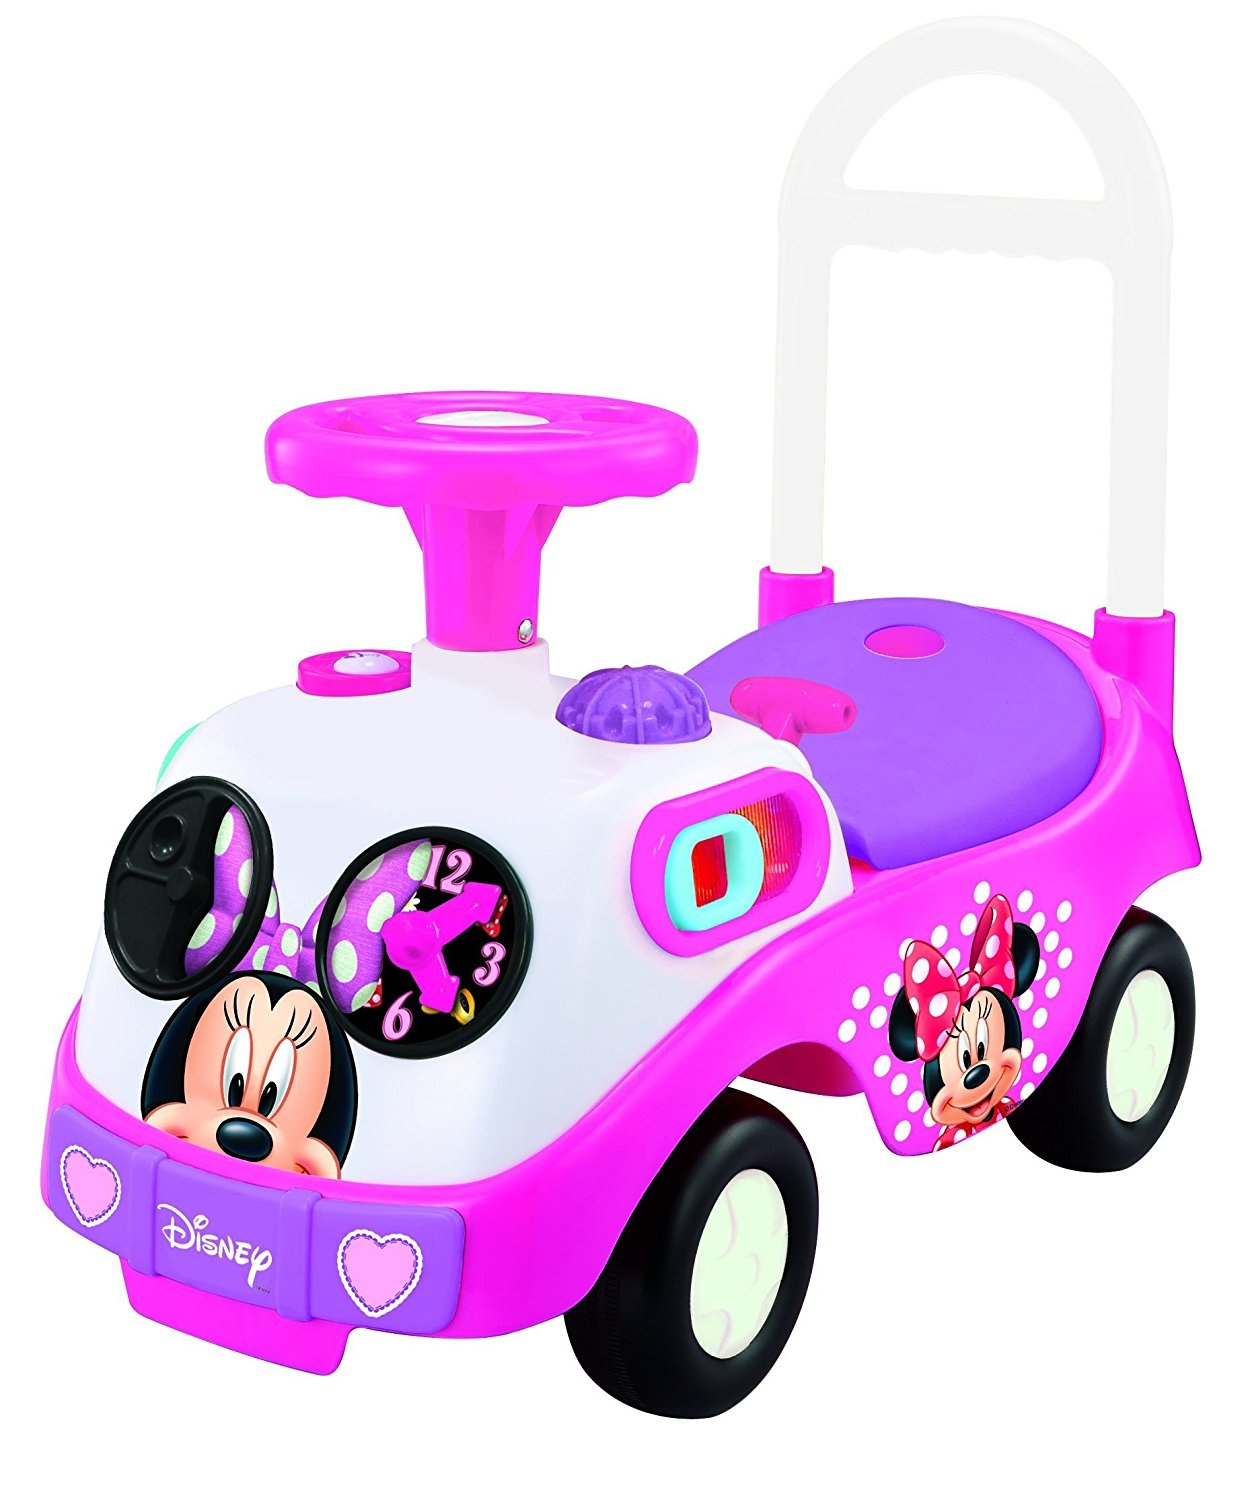 Kiddieland Toys My First Minnie Ride On, One Size by Kiddieland - Import